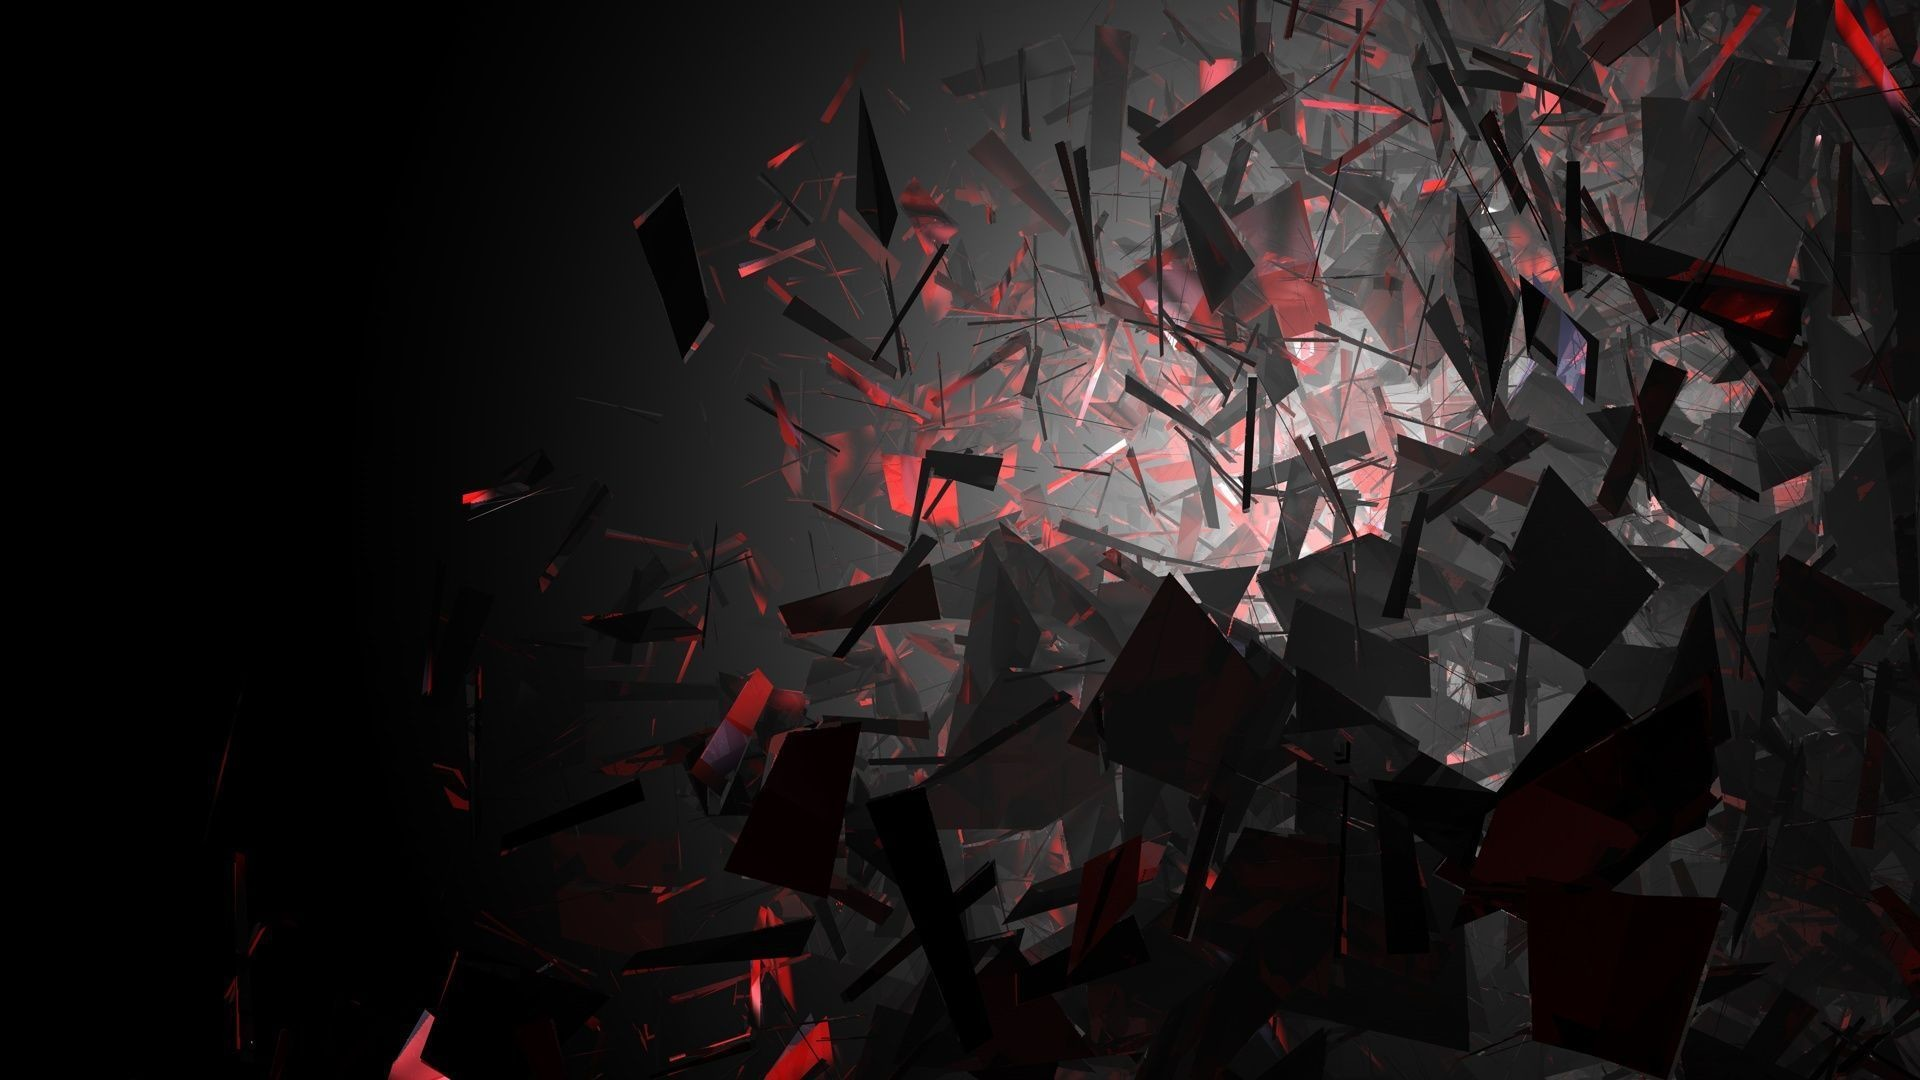 1920x1080 Black and Red Wallpaper PC Attachment 2331 - HD Wallpapers Site